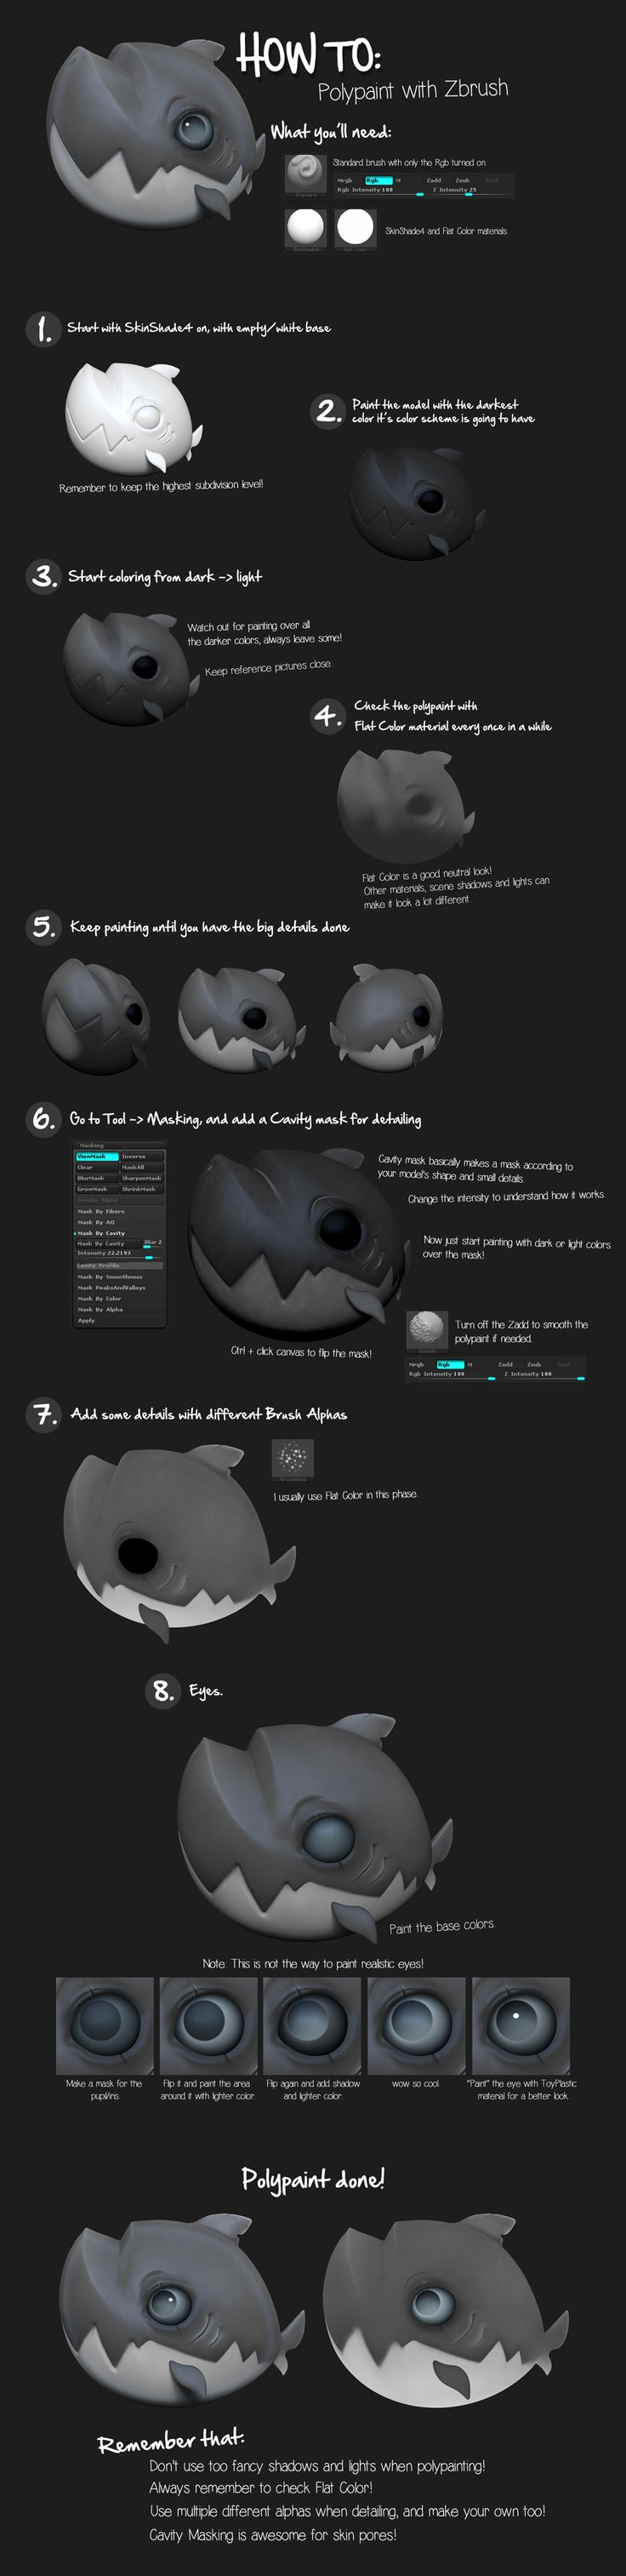 How to: Polypaint with ZBrush by K4ll0.deviantart.com on @deviantART